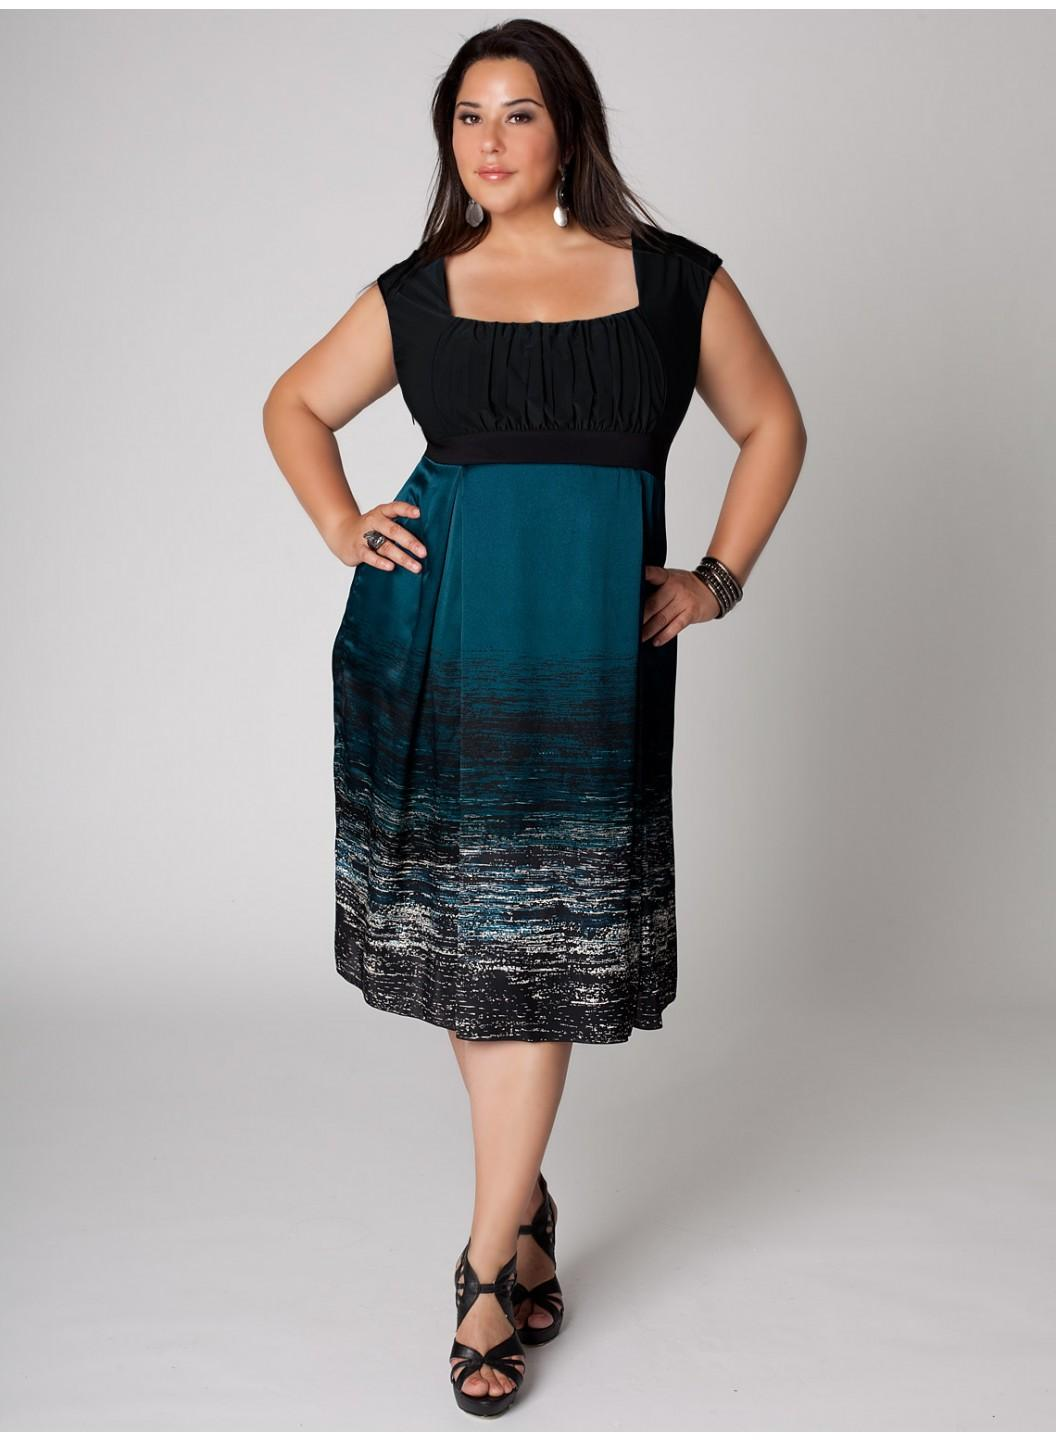 Martina Dress in Marine Teal